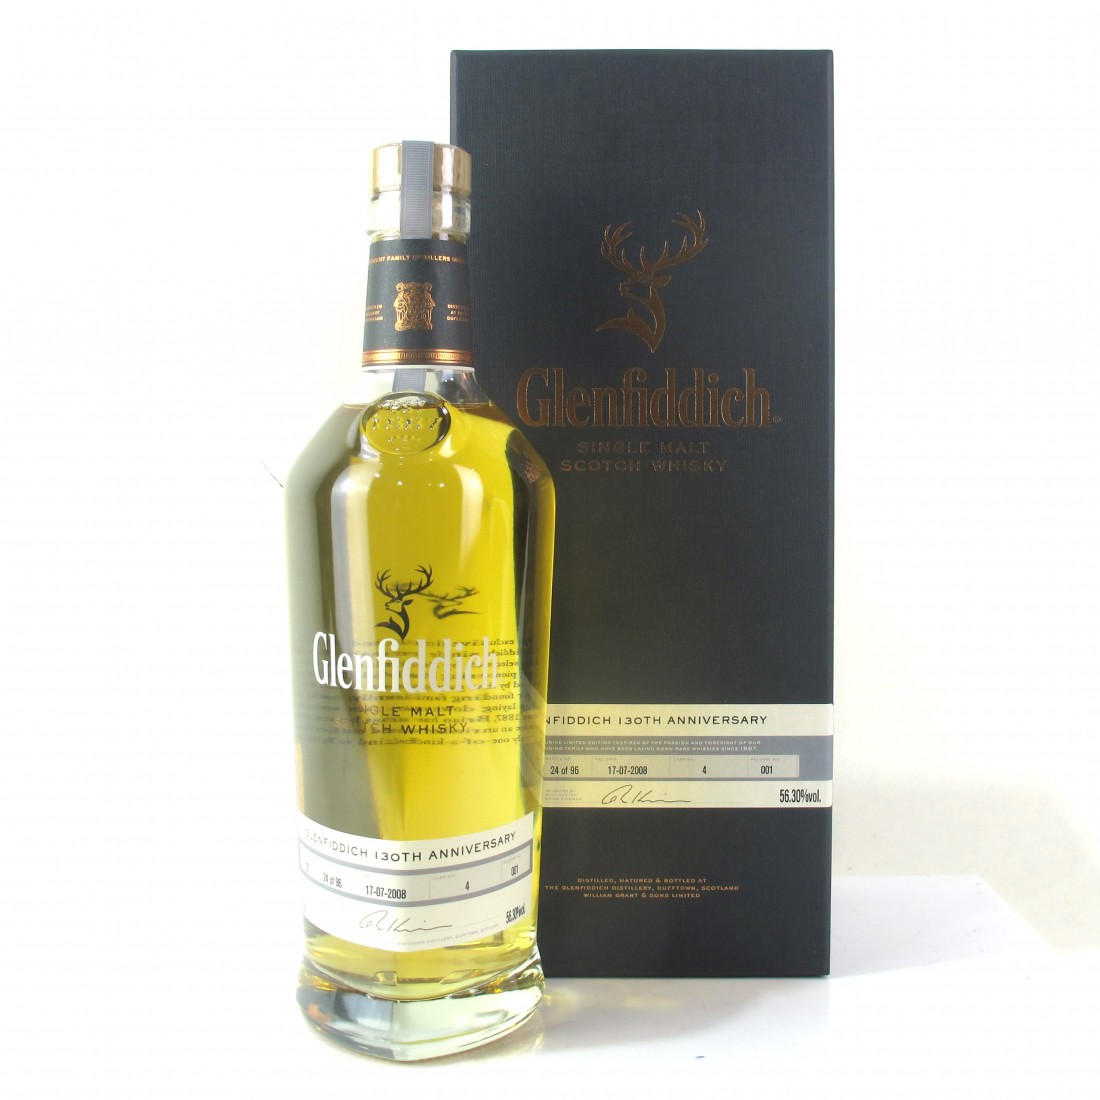 Glenfiddich 20 Year Old 130th Anniverary Single Cask / Release #1